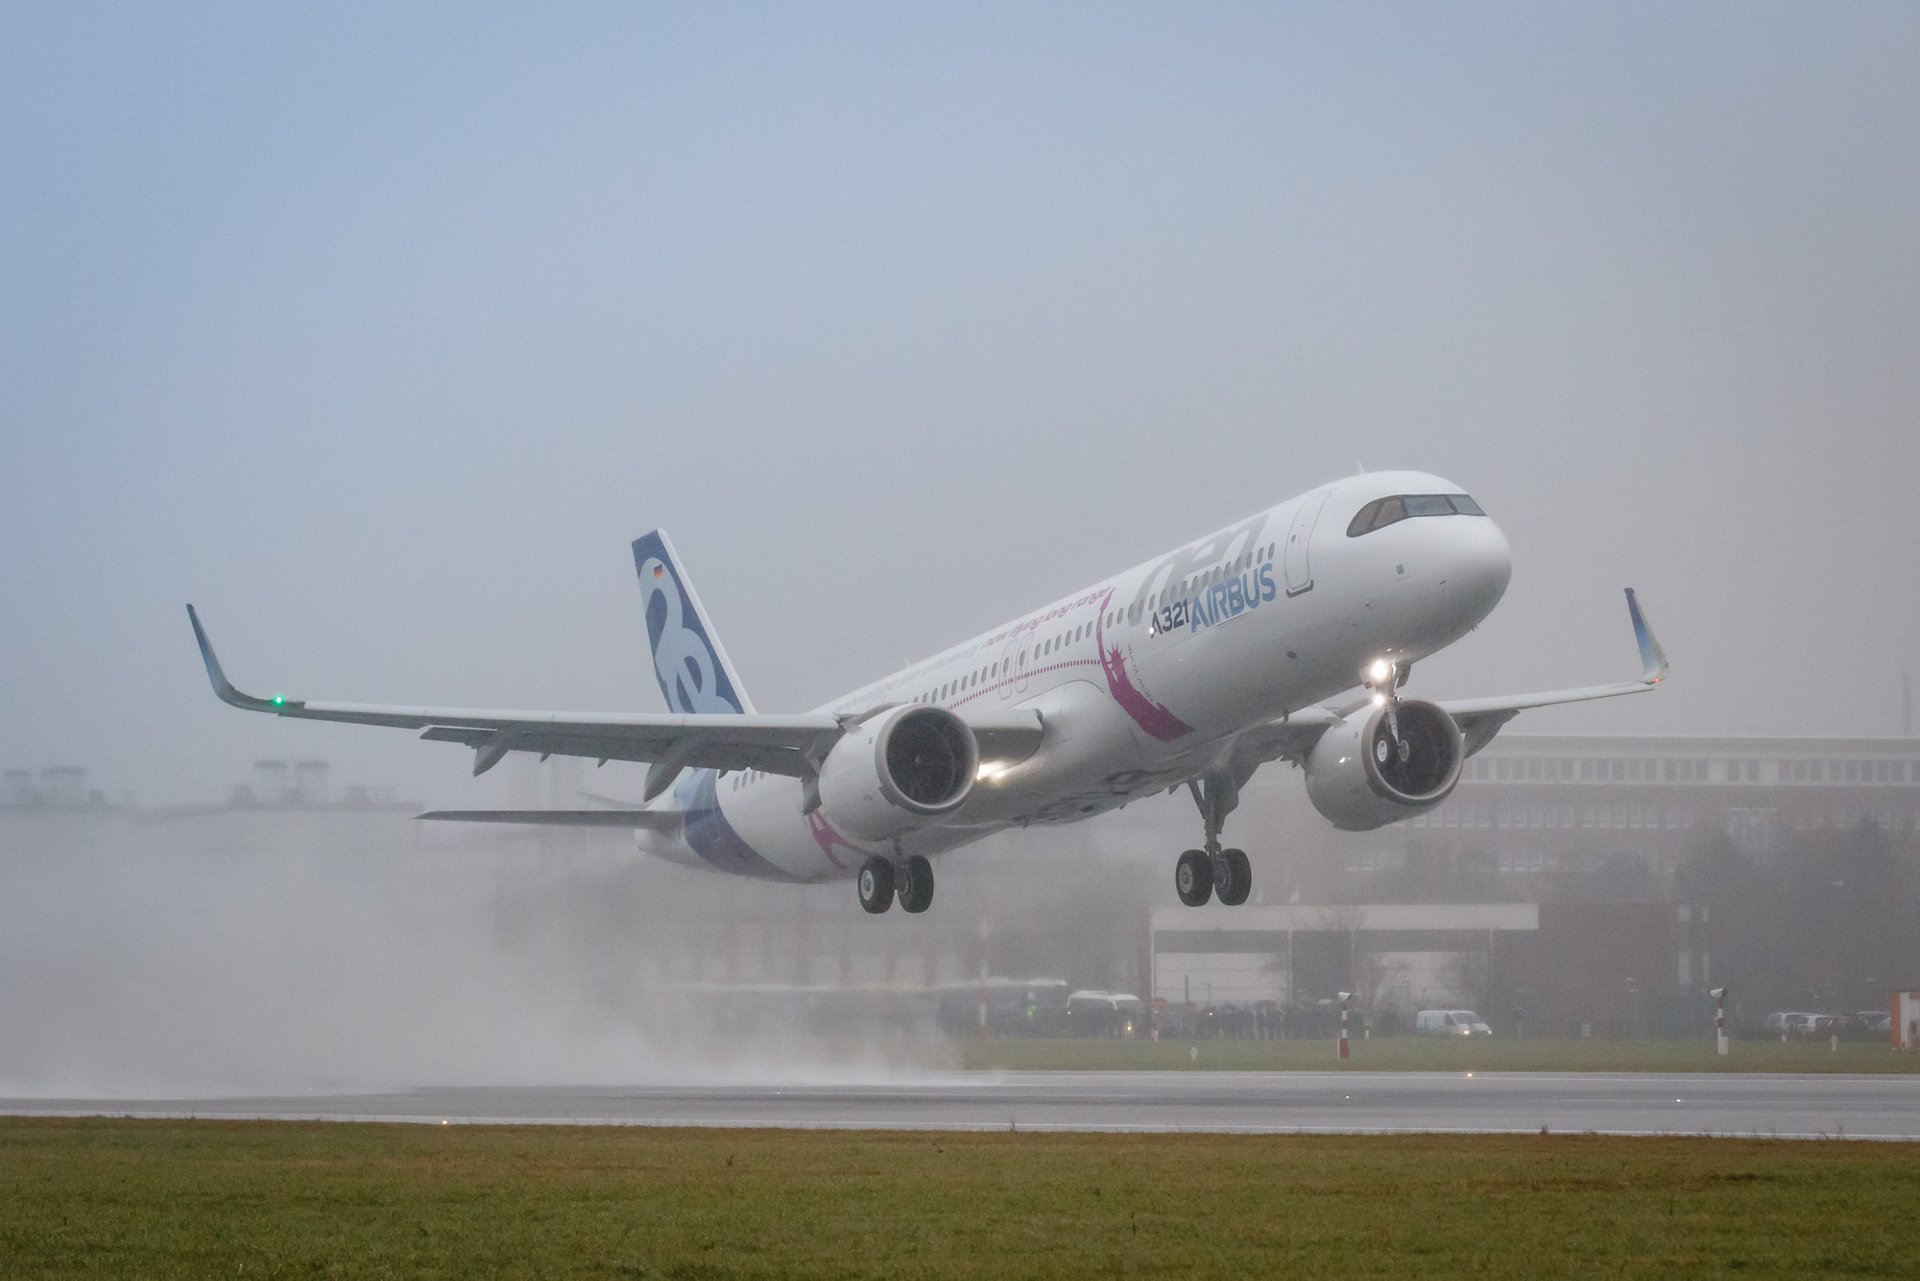 The first A321LR, able to carry up to 240 passengers 4,000 nautical miles, takes to the skies for its maiden flight